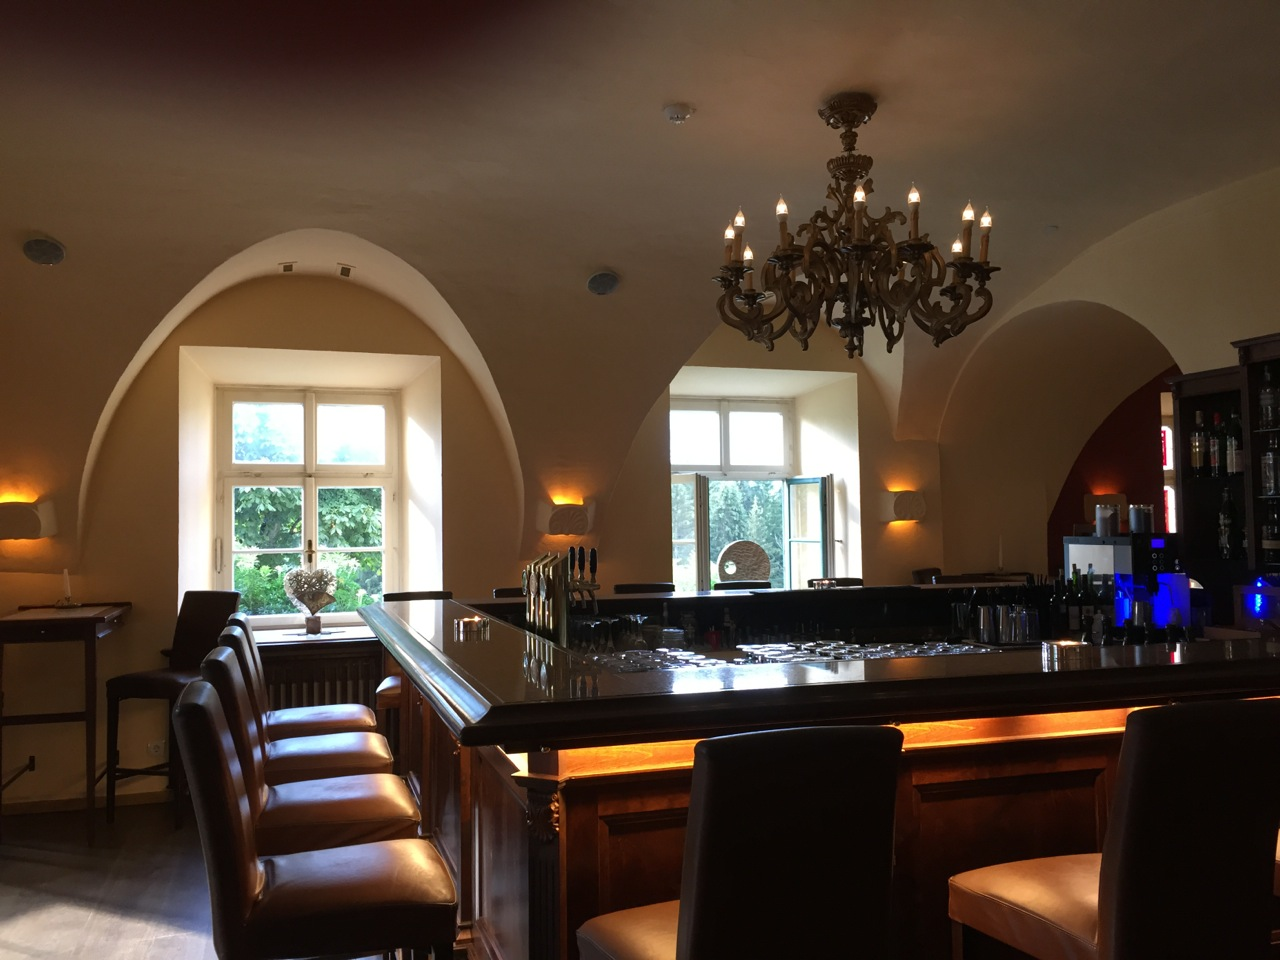 The bar where I took most of my evening meals at the Schloss Pichlarn Hotel.